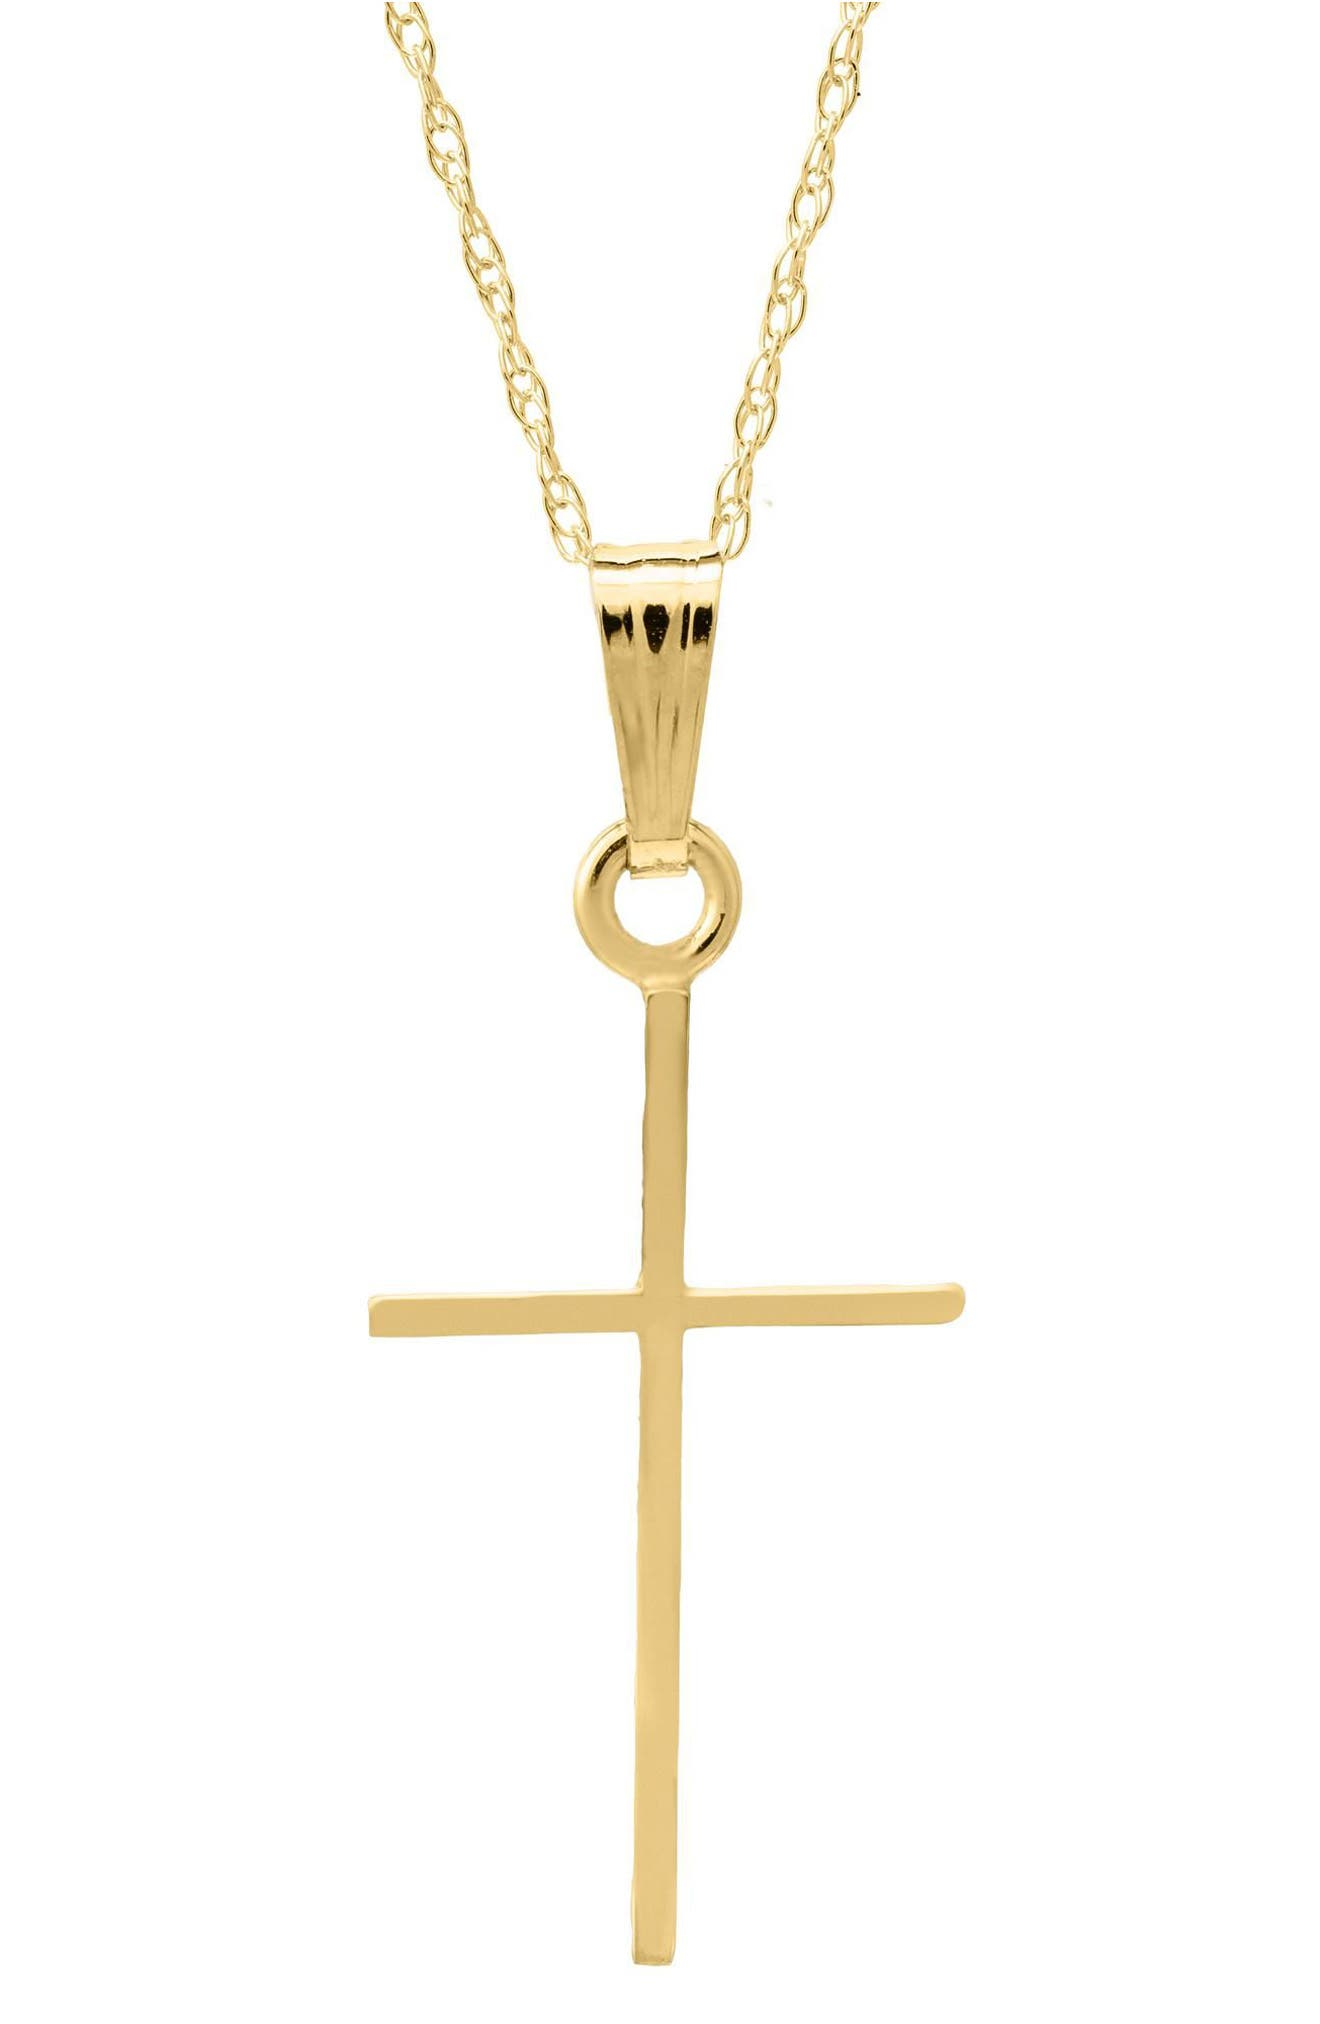 14k Gold Cross Pendant Necklace,                             Main thumbnail 1, color,                             Gold